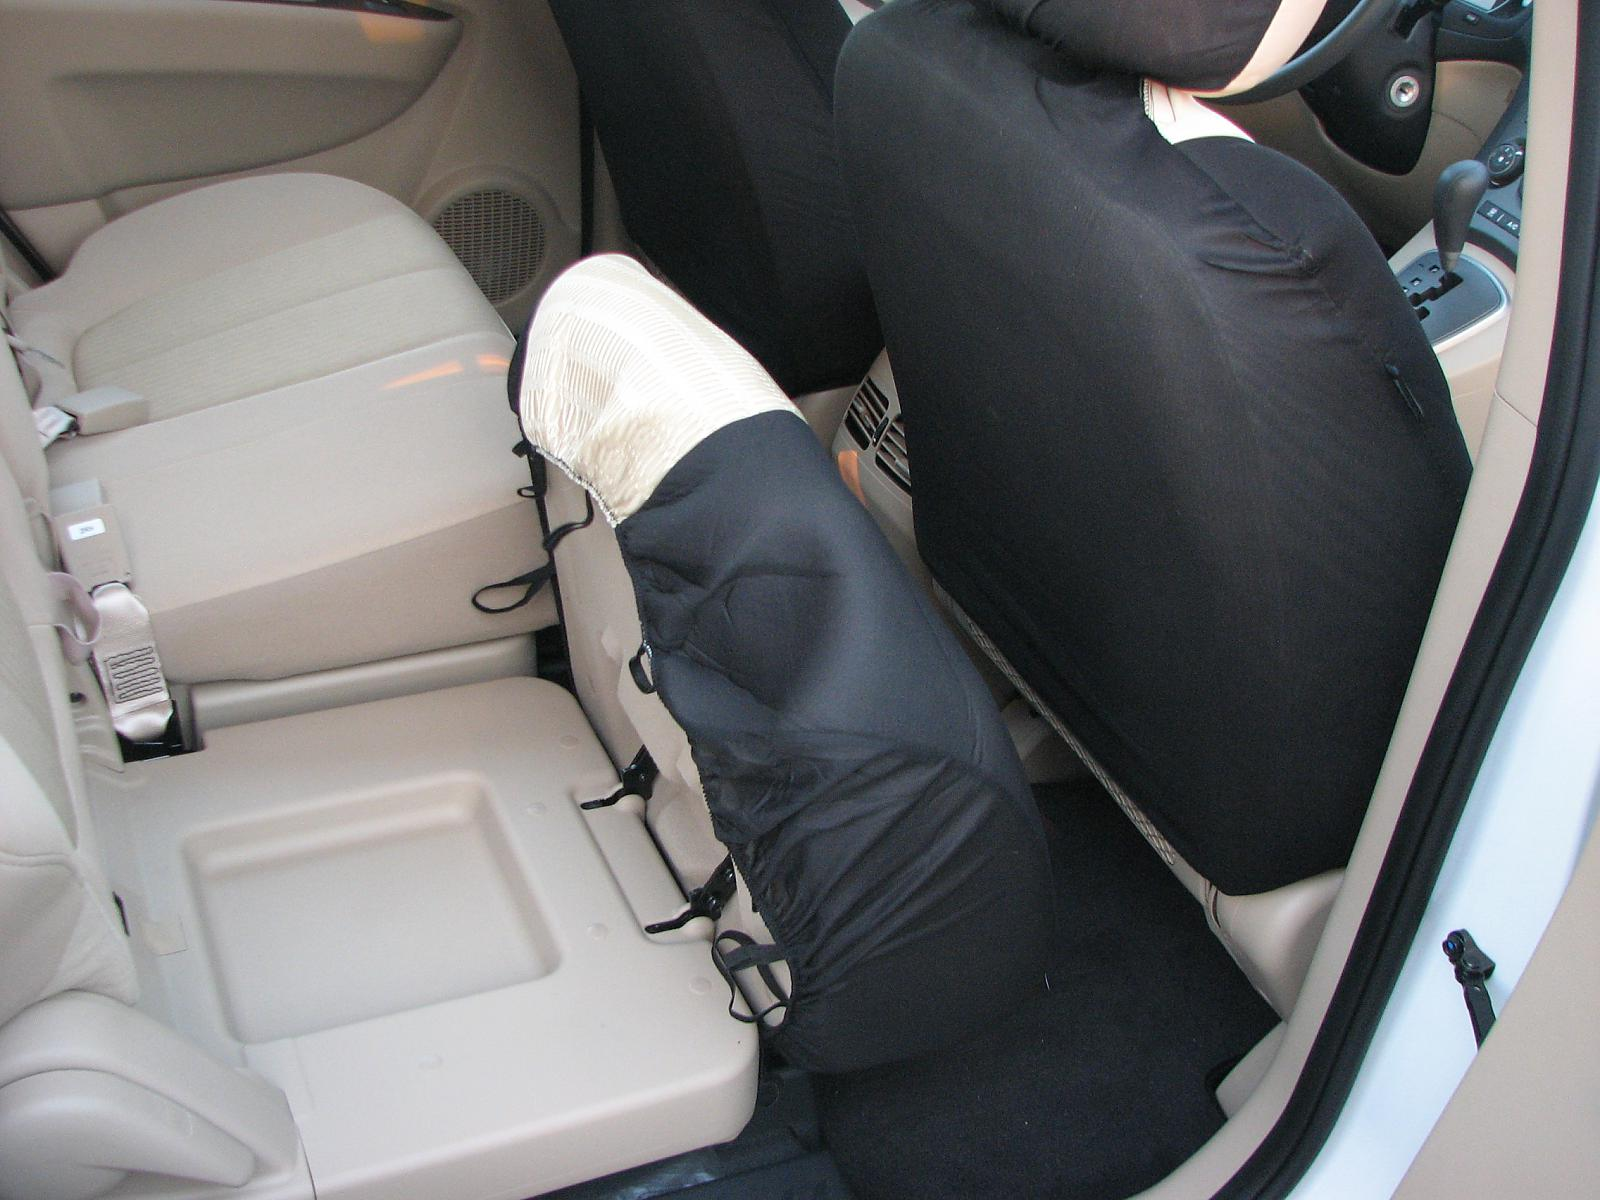 Seat Covers For The 09 Rondo That You Have And Like